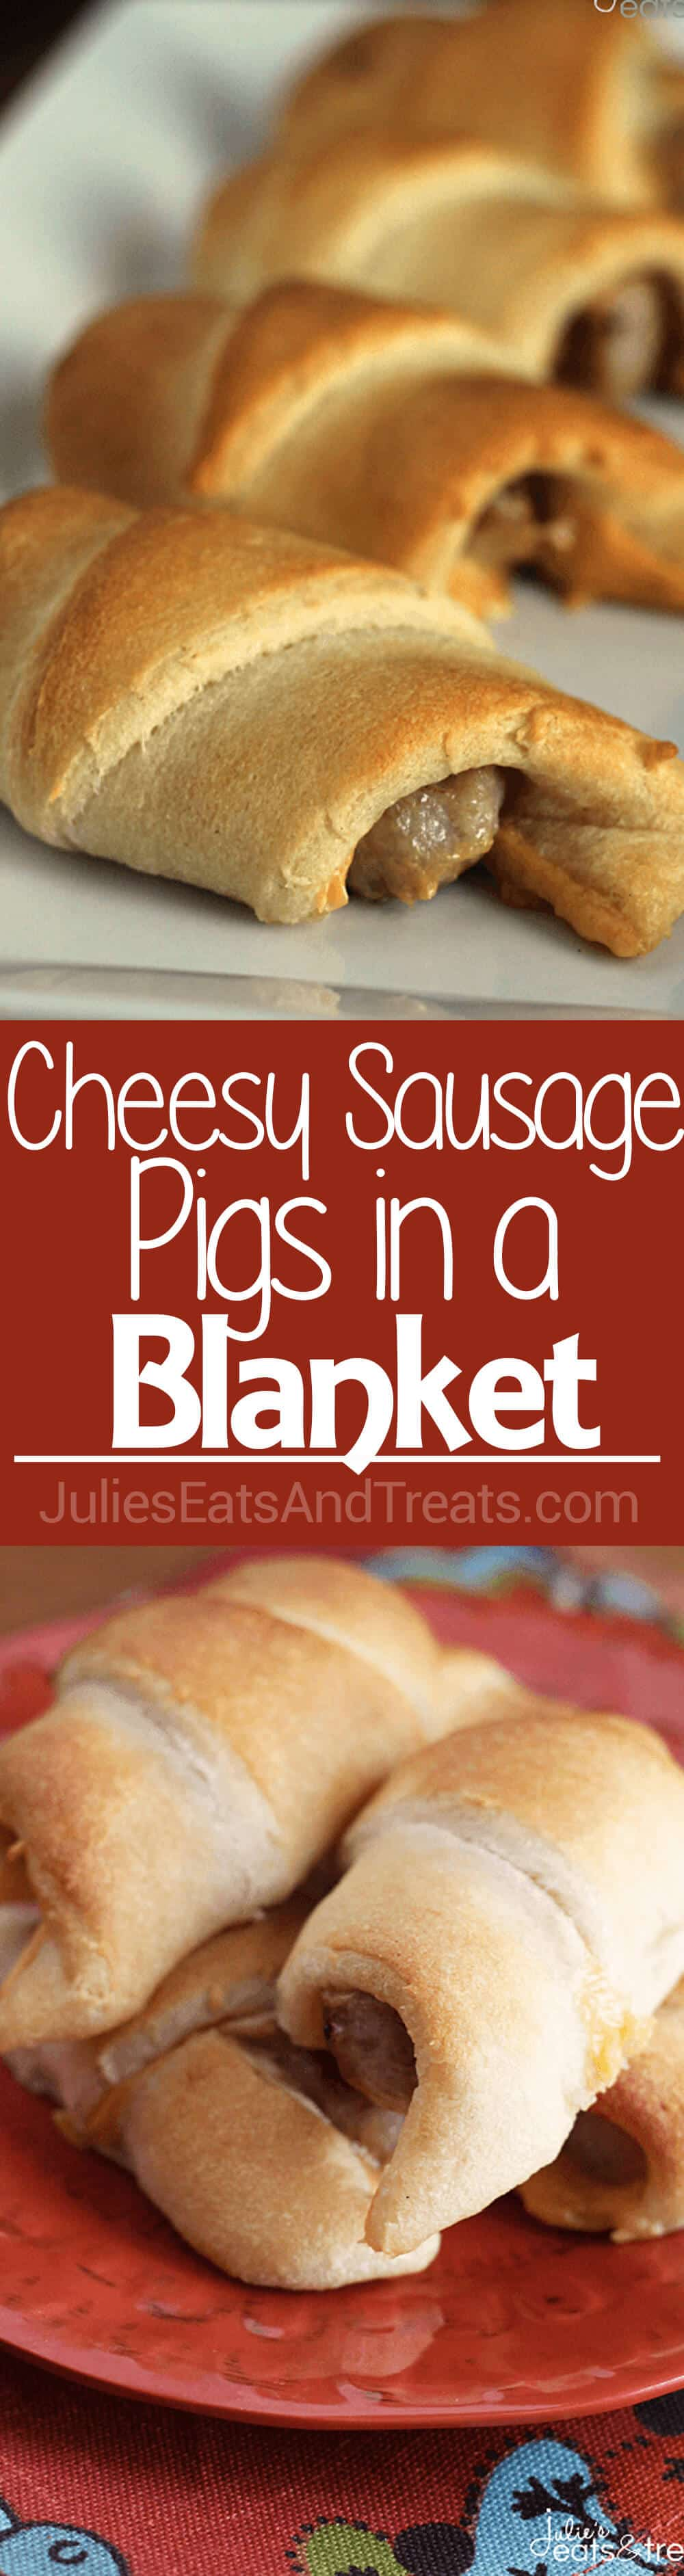 Cheesy Sausage Pigs In A Blanket Julie S Eats Amp Treats